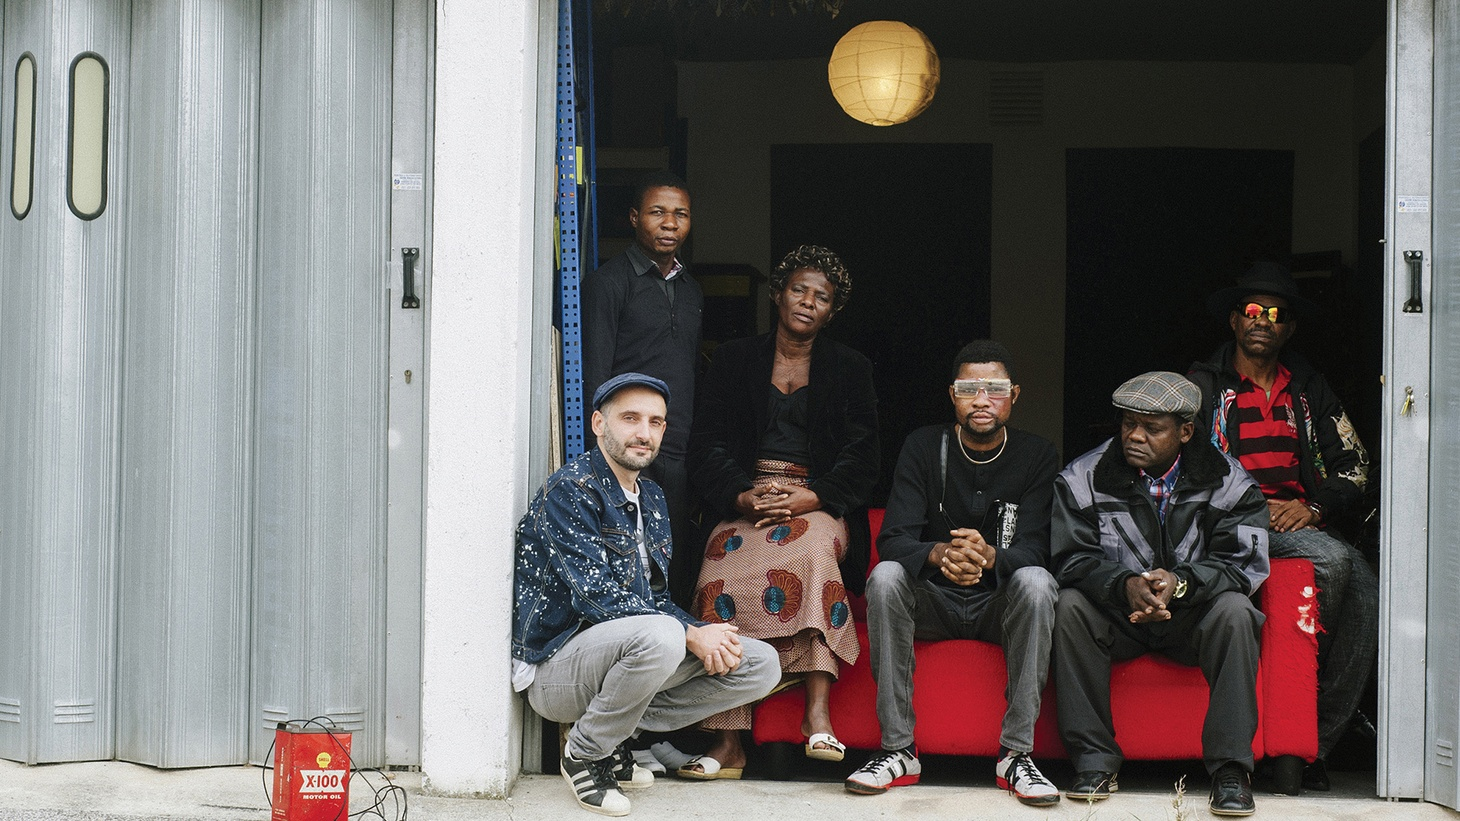 In 2004, the world was introduced to the sound of Congo's Konono N°1 as they turned discarded car parts into instruments. Their cultural exchange has expanded through the years and they are now working with Batida, a dance producer who is based in Lisbon but is originally from their neighboring country Angola.